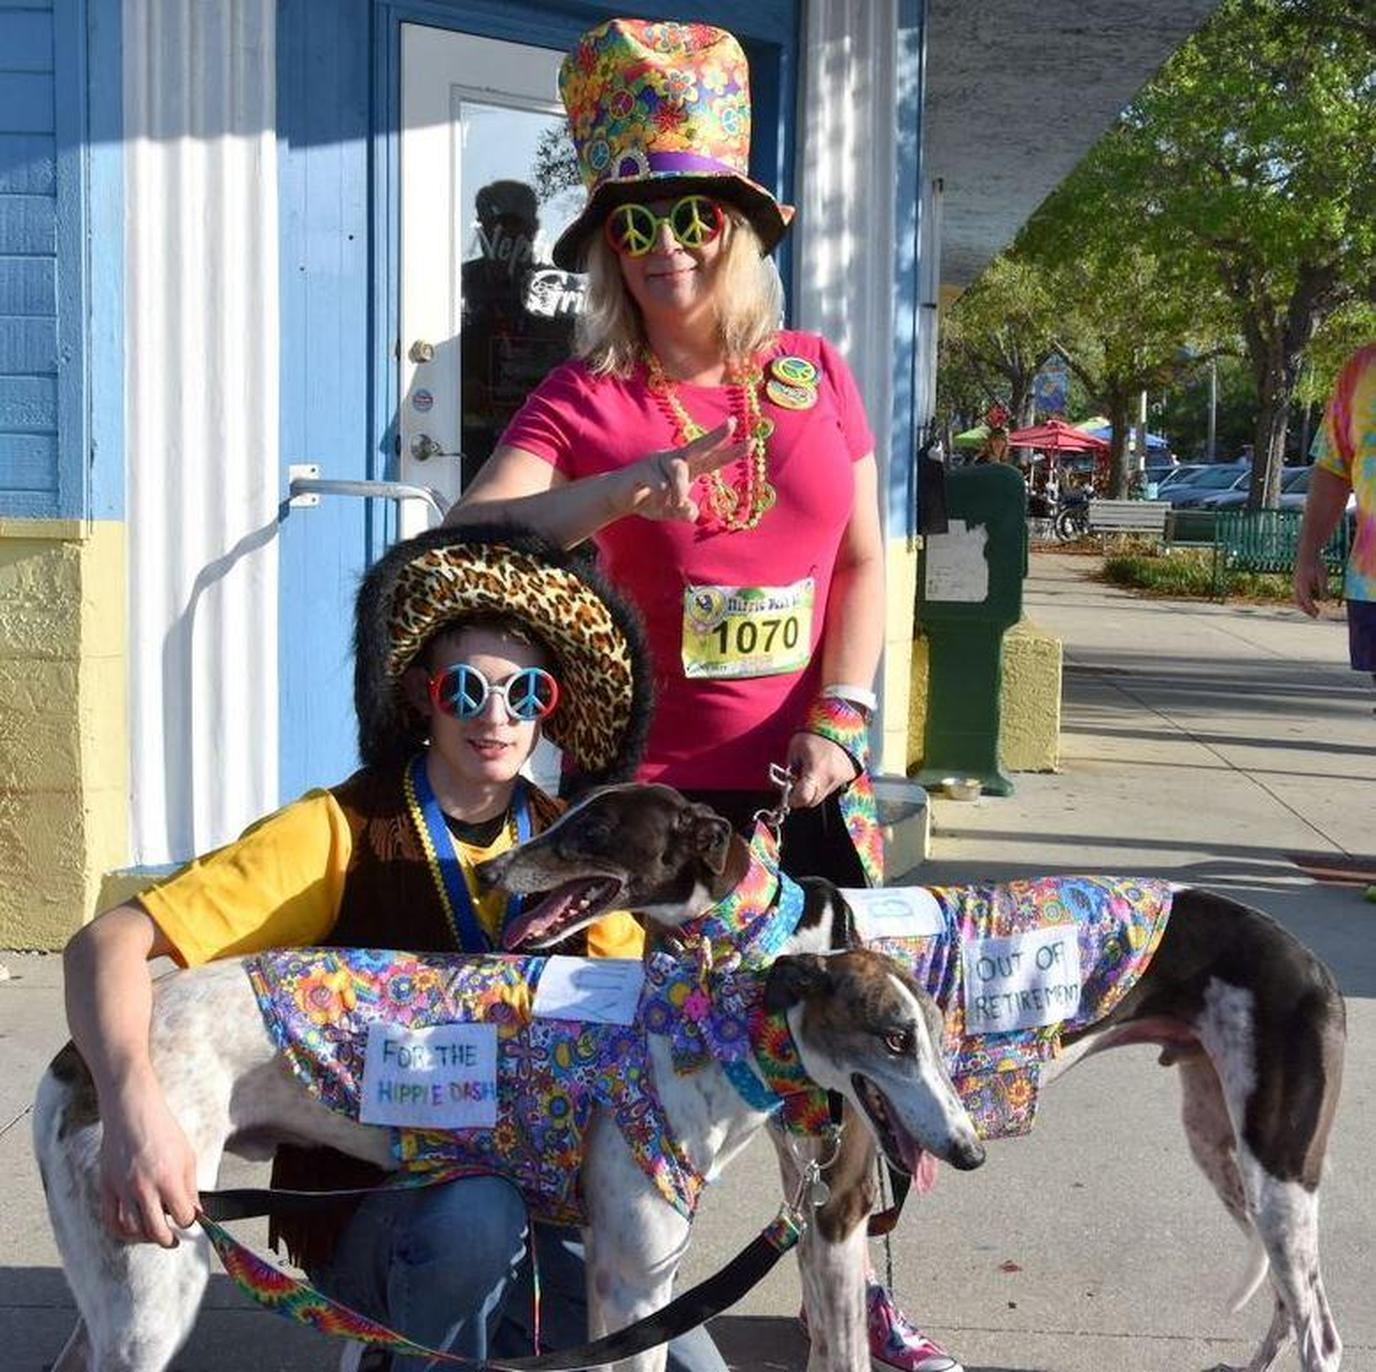 A Woman, Boy, and Two GreyHounds Dress in Hippie Costumes For a Pet-Friendly Spring Run in Florida.